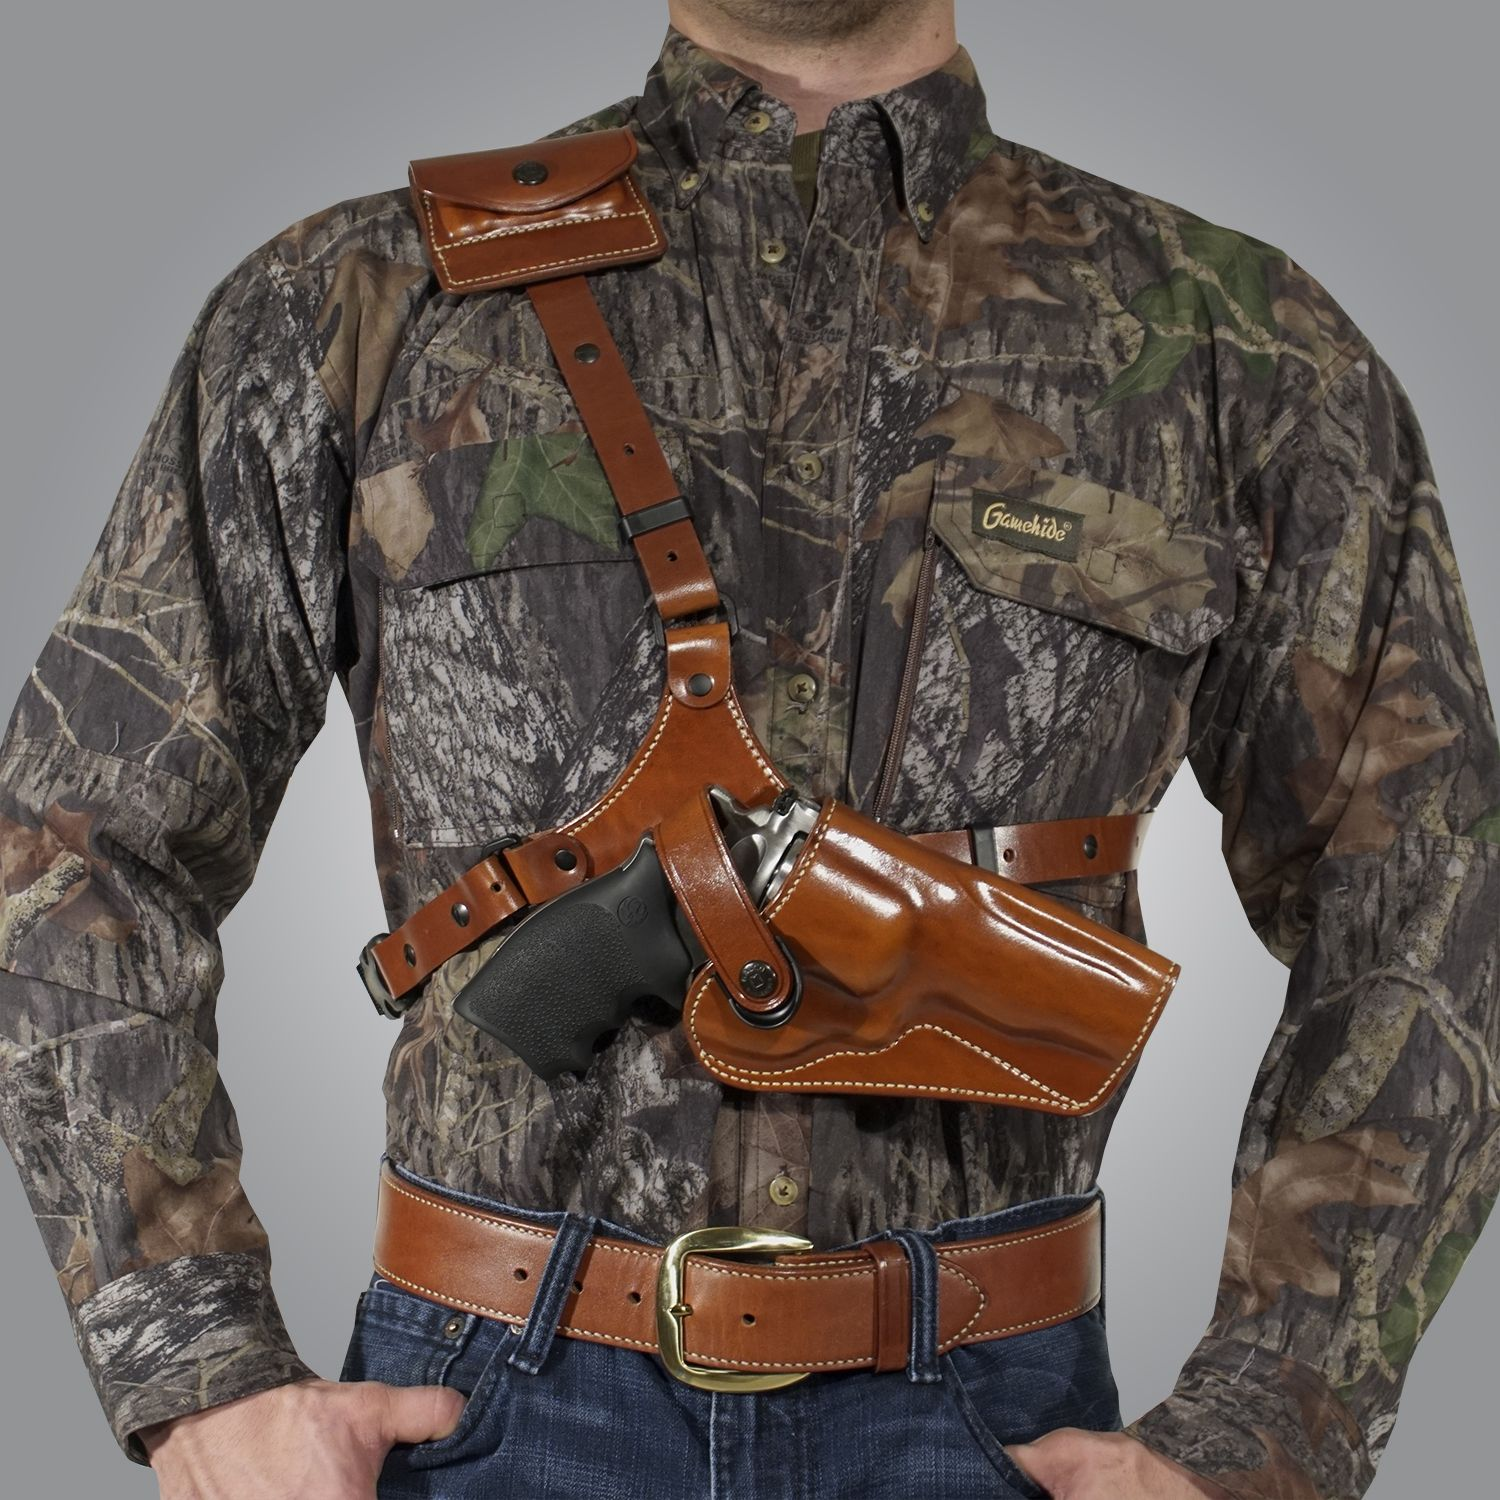 Pin On Galco S Shoulder Holster Systems